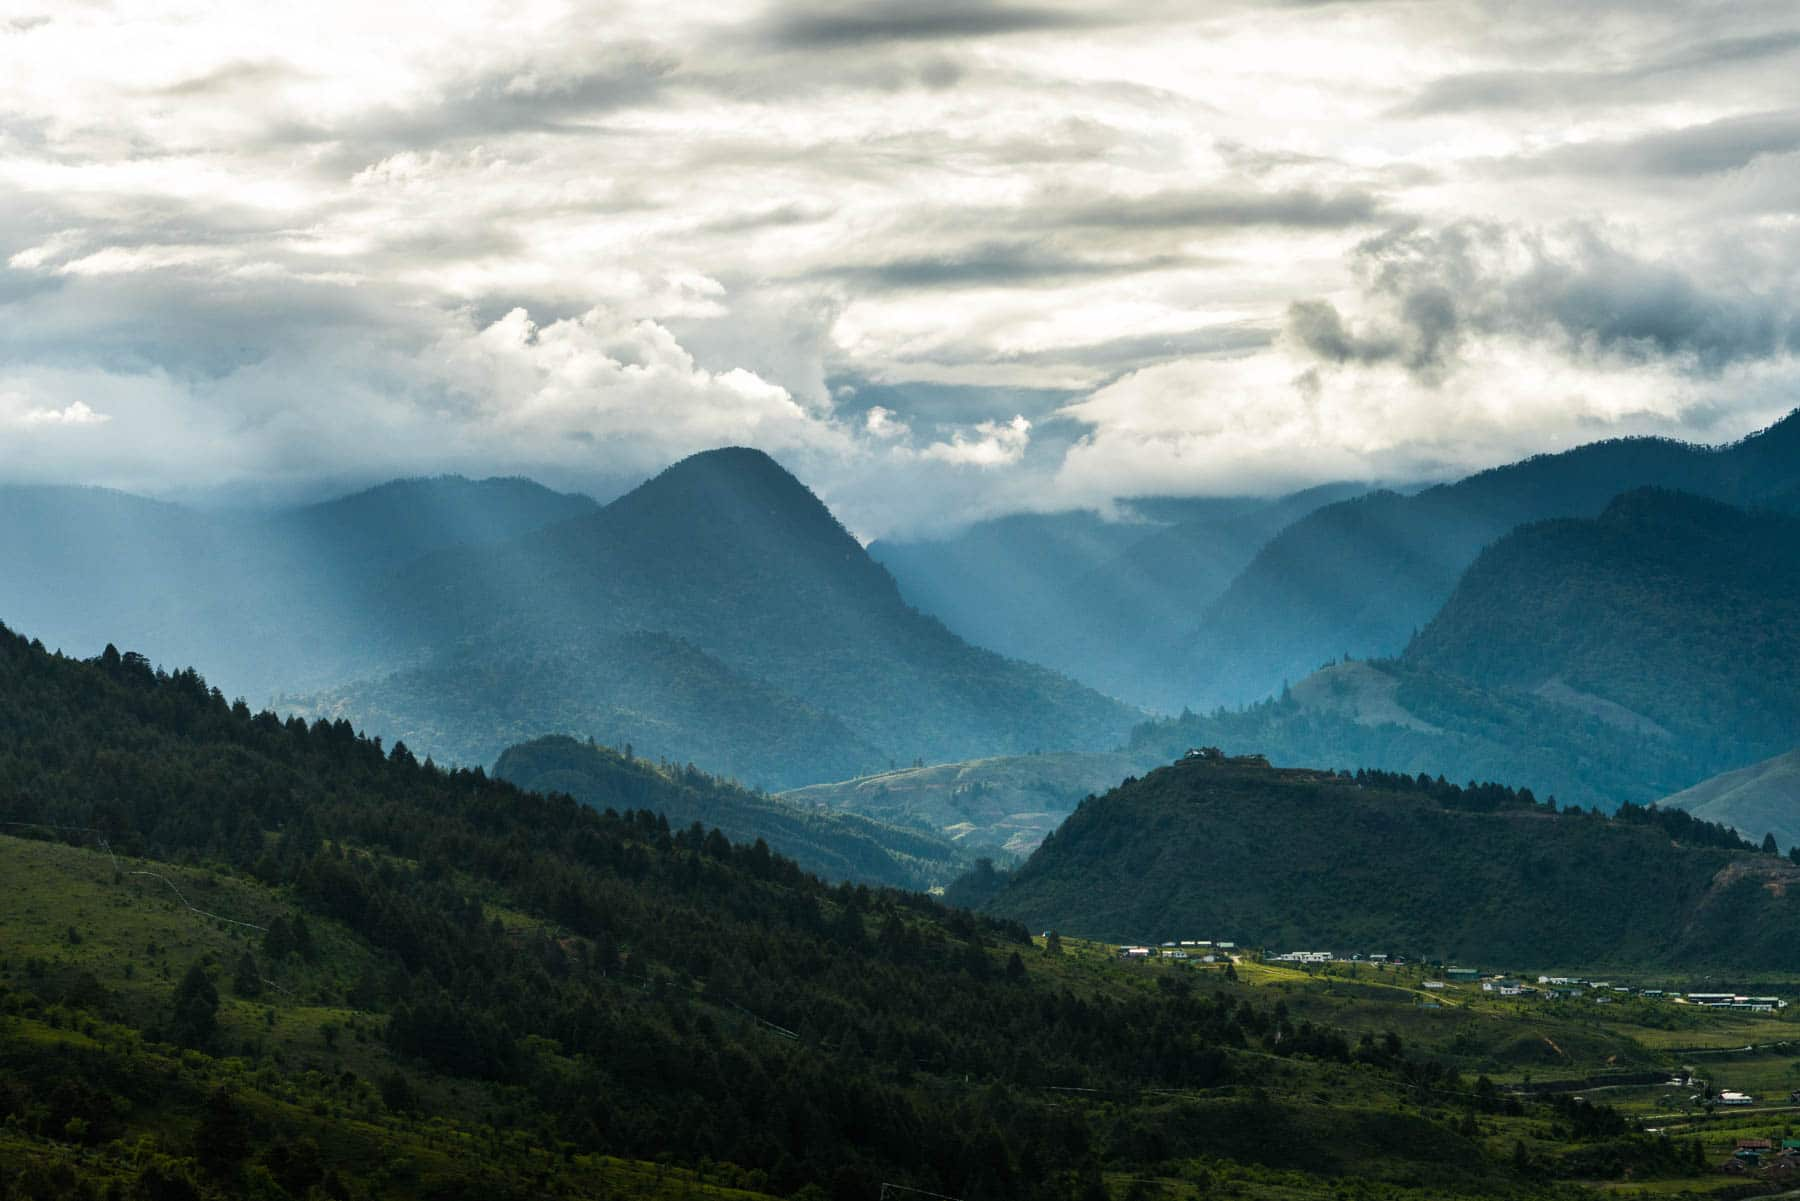 Backpacking in Arunachal Pradesh travel guide - Sunlight breaking through clouds in Mechuka - Lost With Purpose